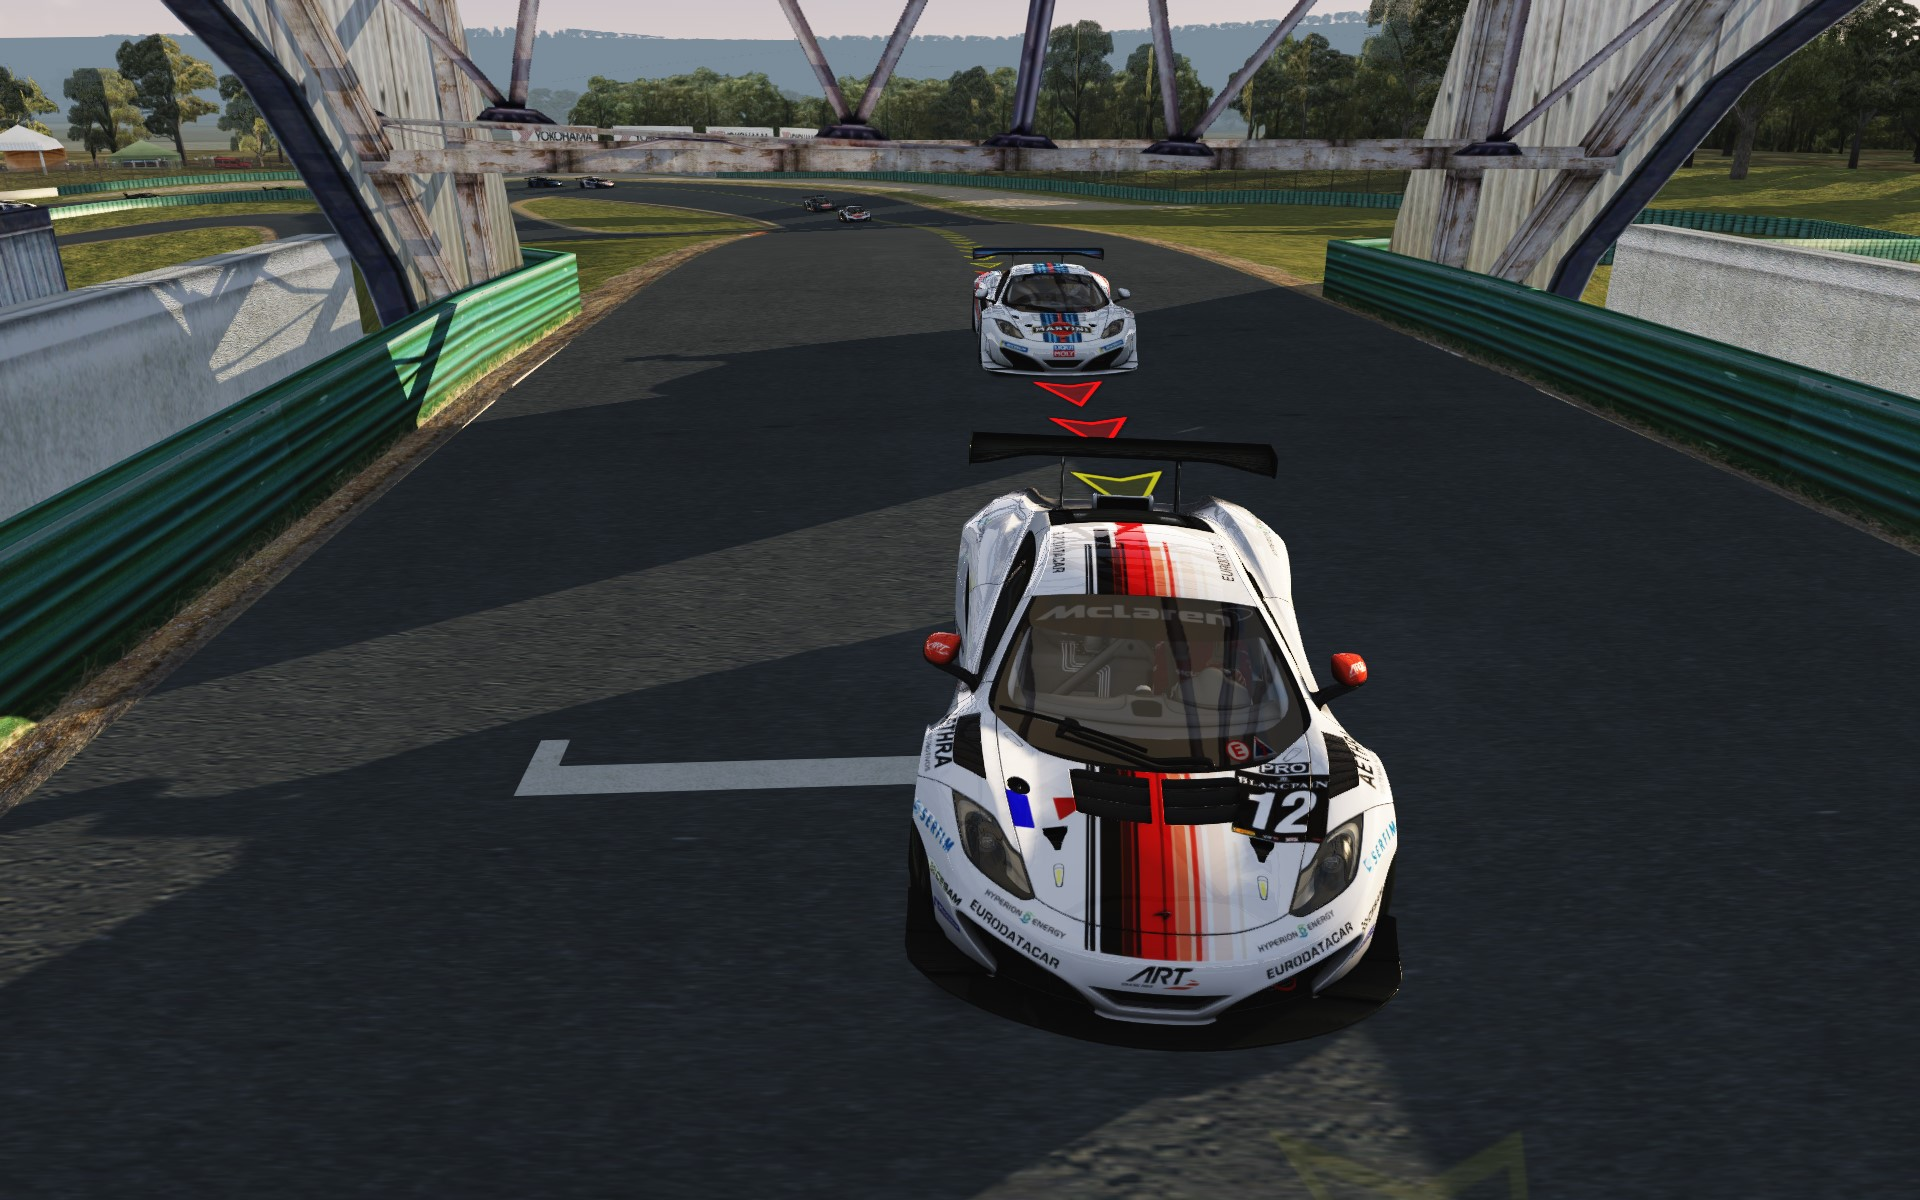 Screenshot_mclaren_mp412c_gt3_oranpark_26-6-115-20-32-49.jpg